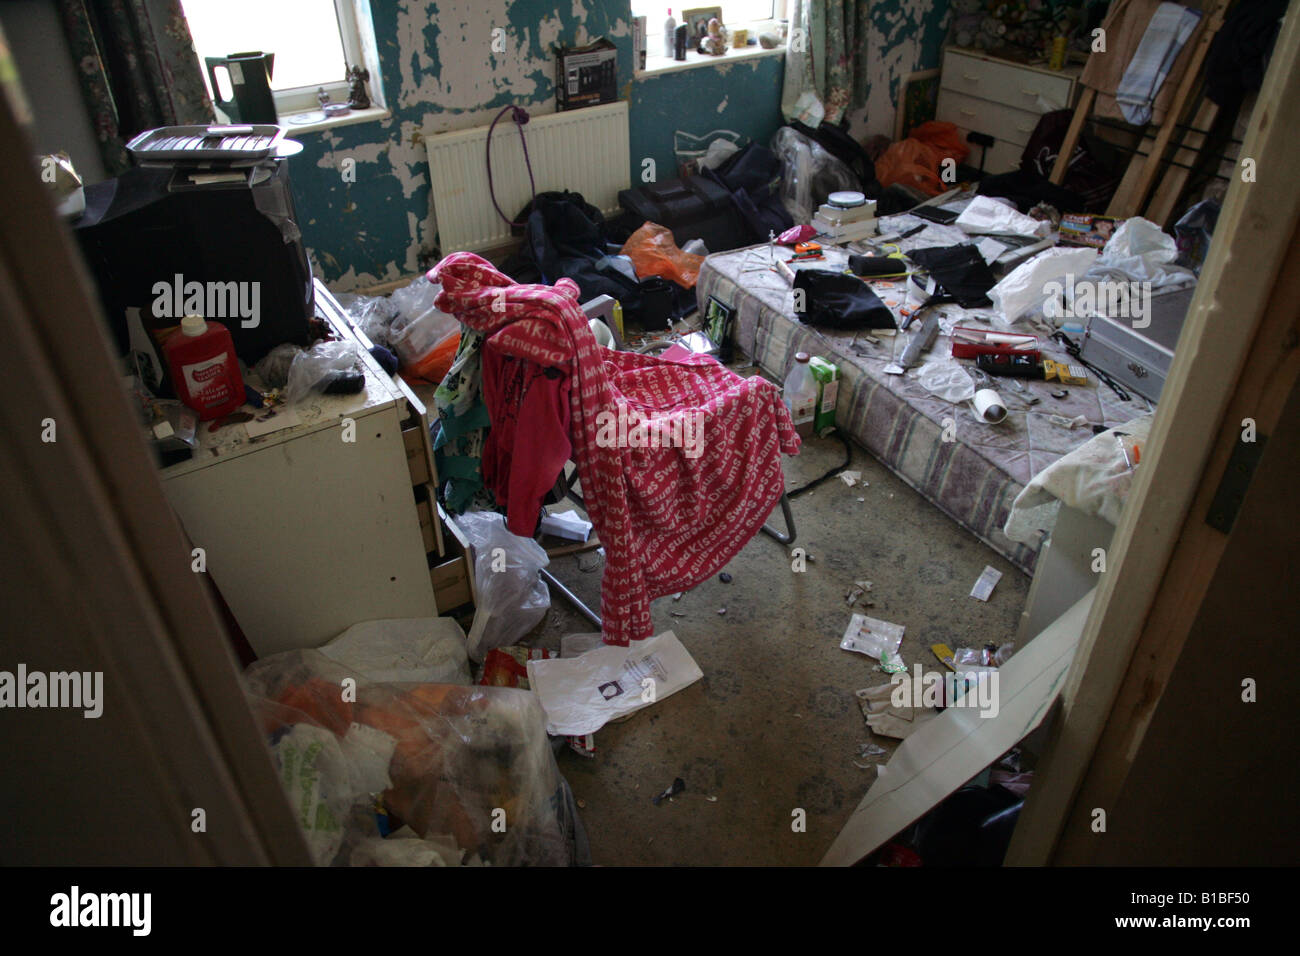 A room used for injecting in the home of a heroin addict. - Stock Image